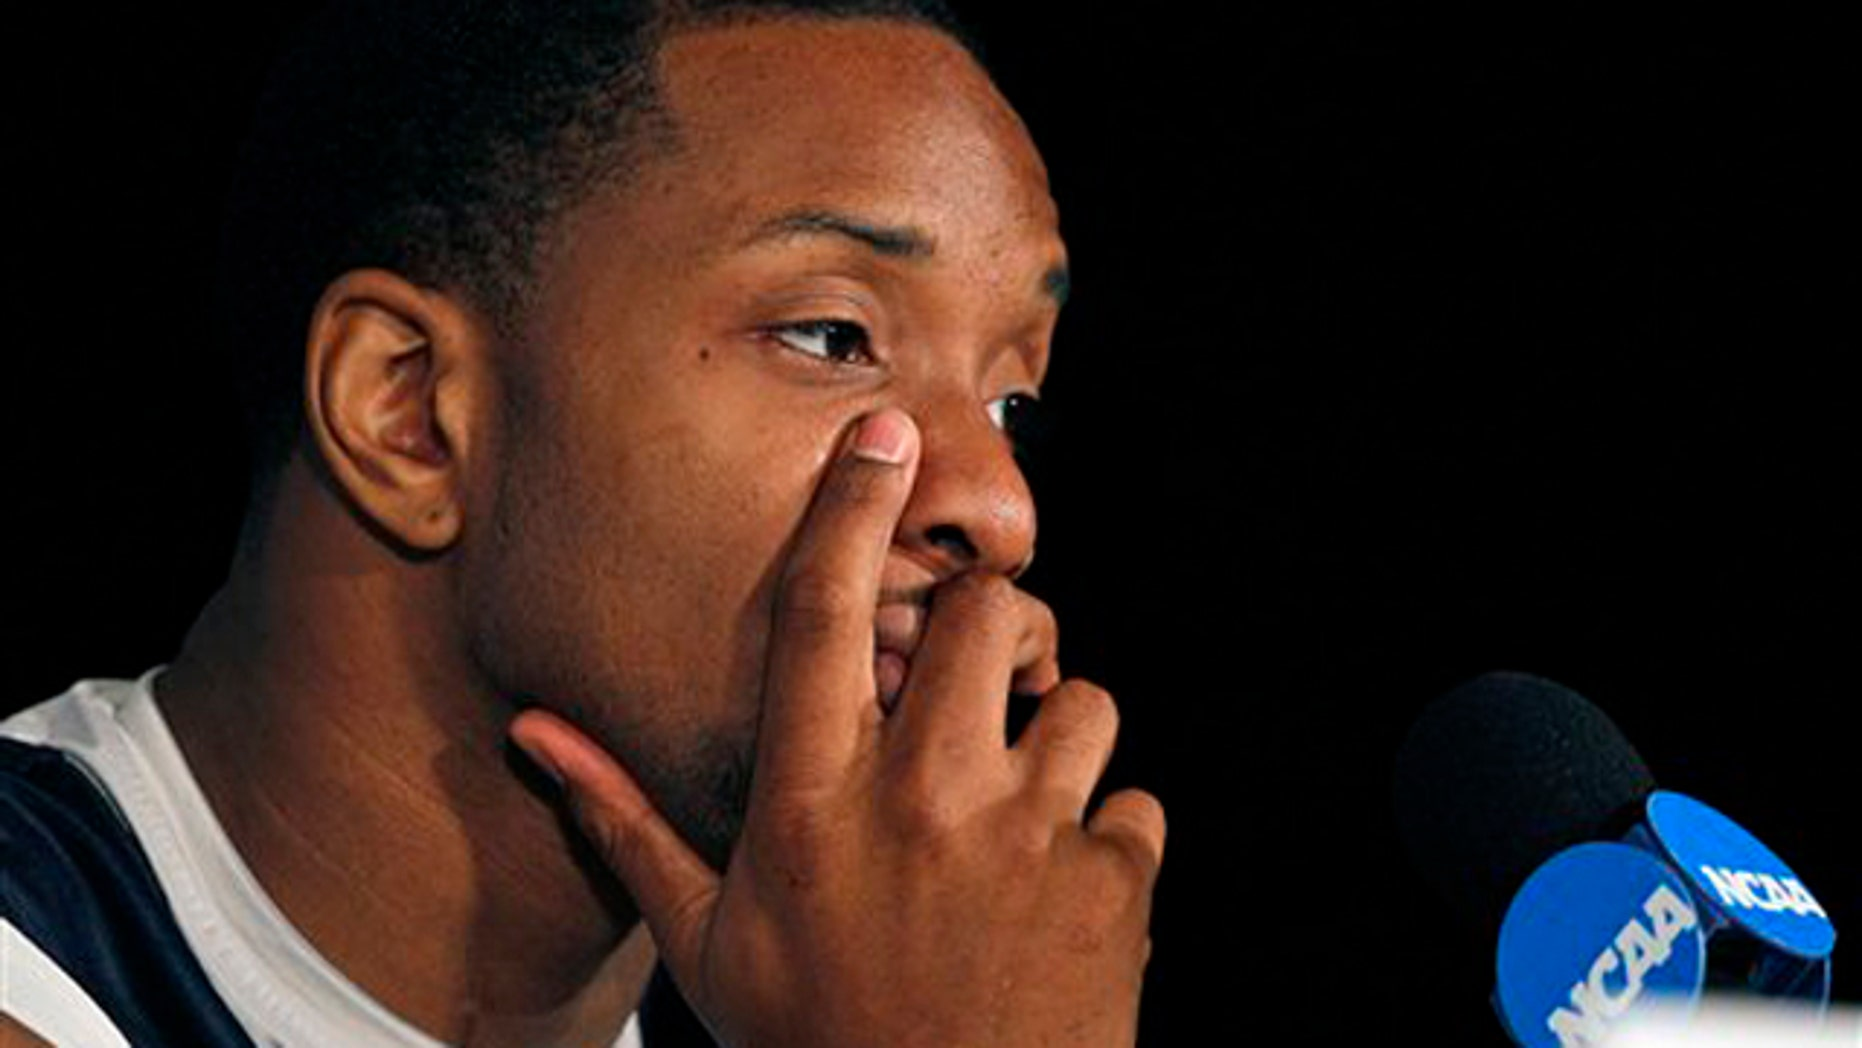 March 17, 2012: Xavier's Dezmine Wells ponders a question during a news conference in Greensboro, N.C.